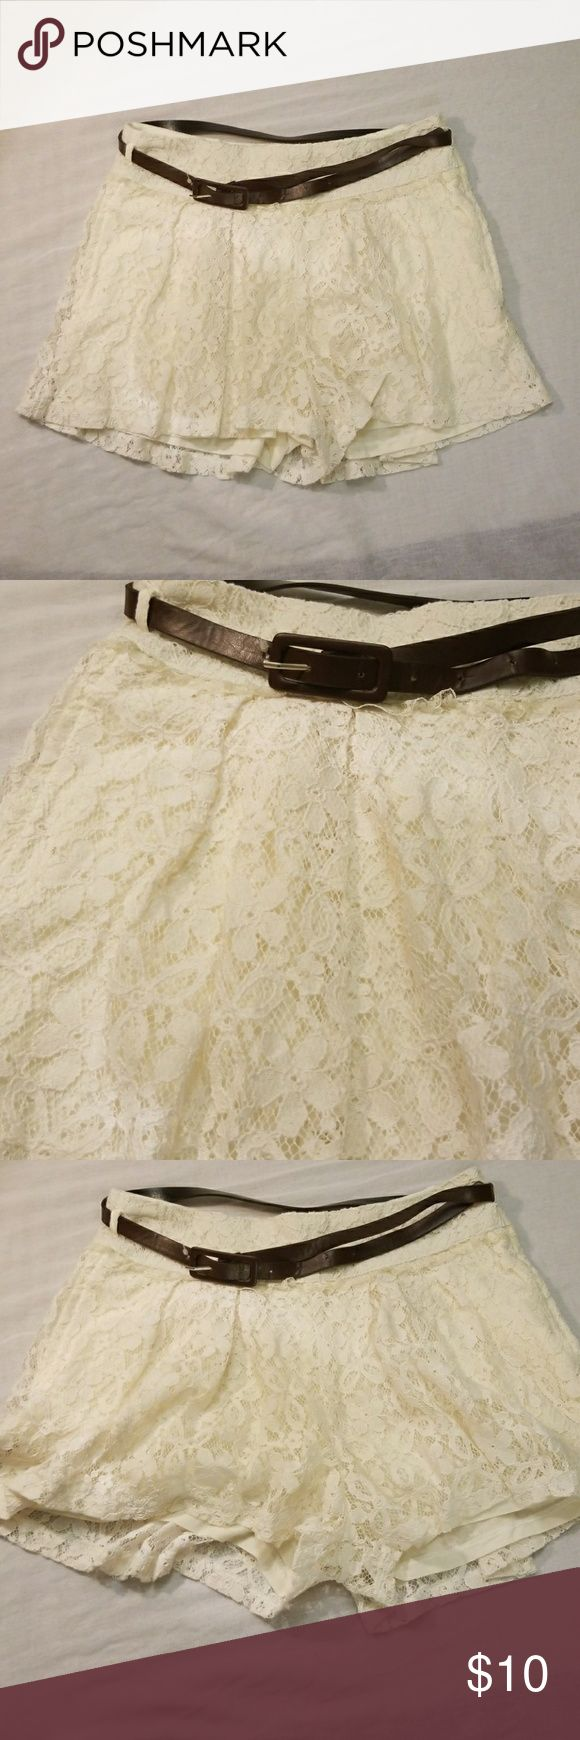 Just Ginger shorts Cream Lace Shorts Made By Just Ginger. Size S. Brand New. Has 2 Side Pockets. Cute For Spring Or The Summertime. Needs to go to a good home where somebody will actually wear it. 😁 just ginger Shorts